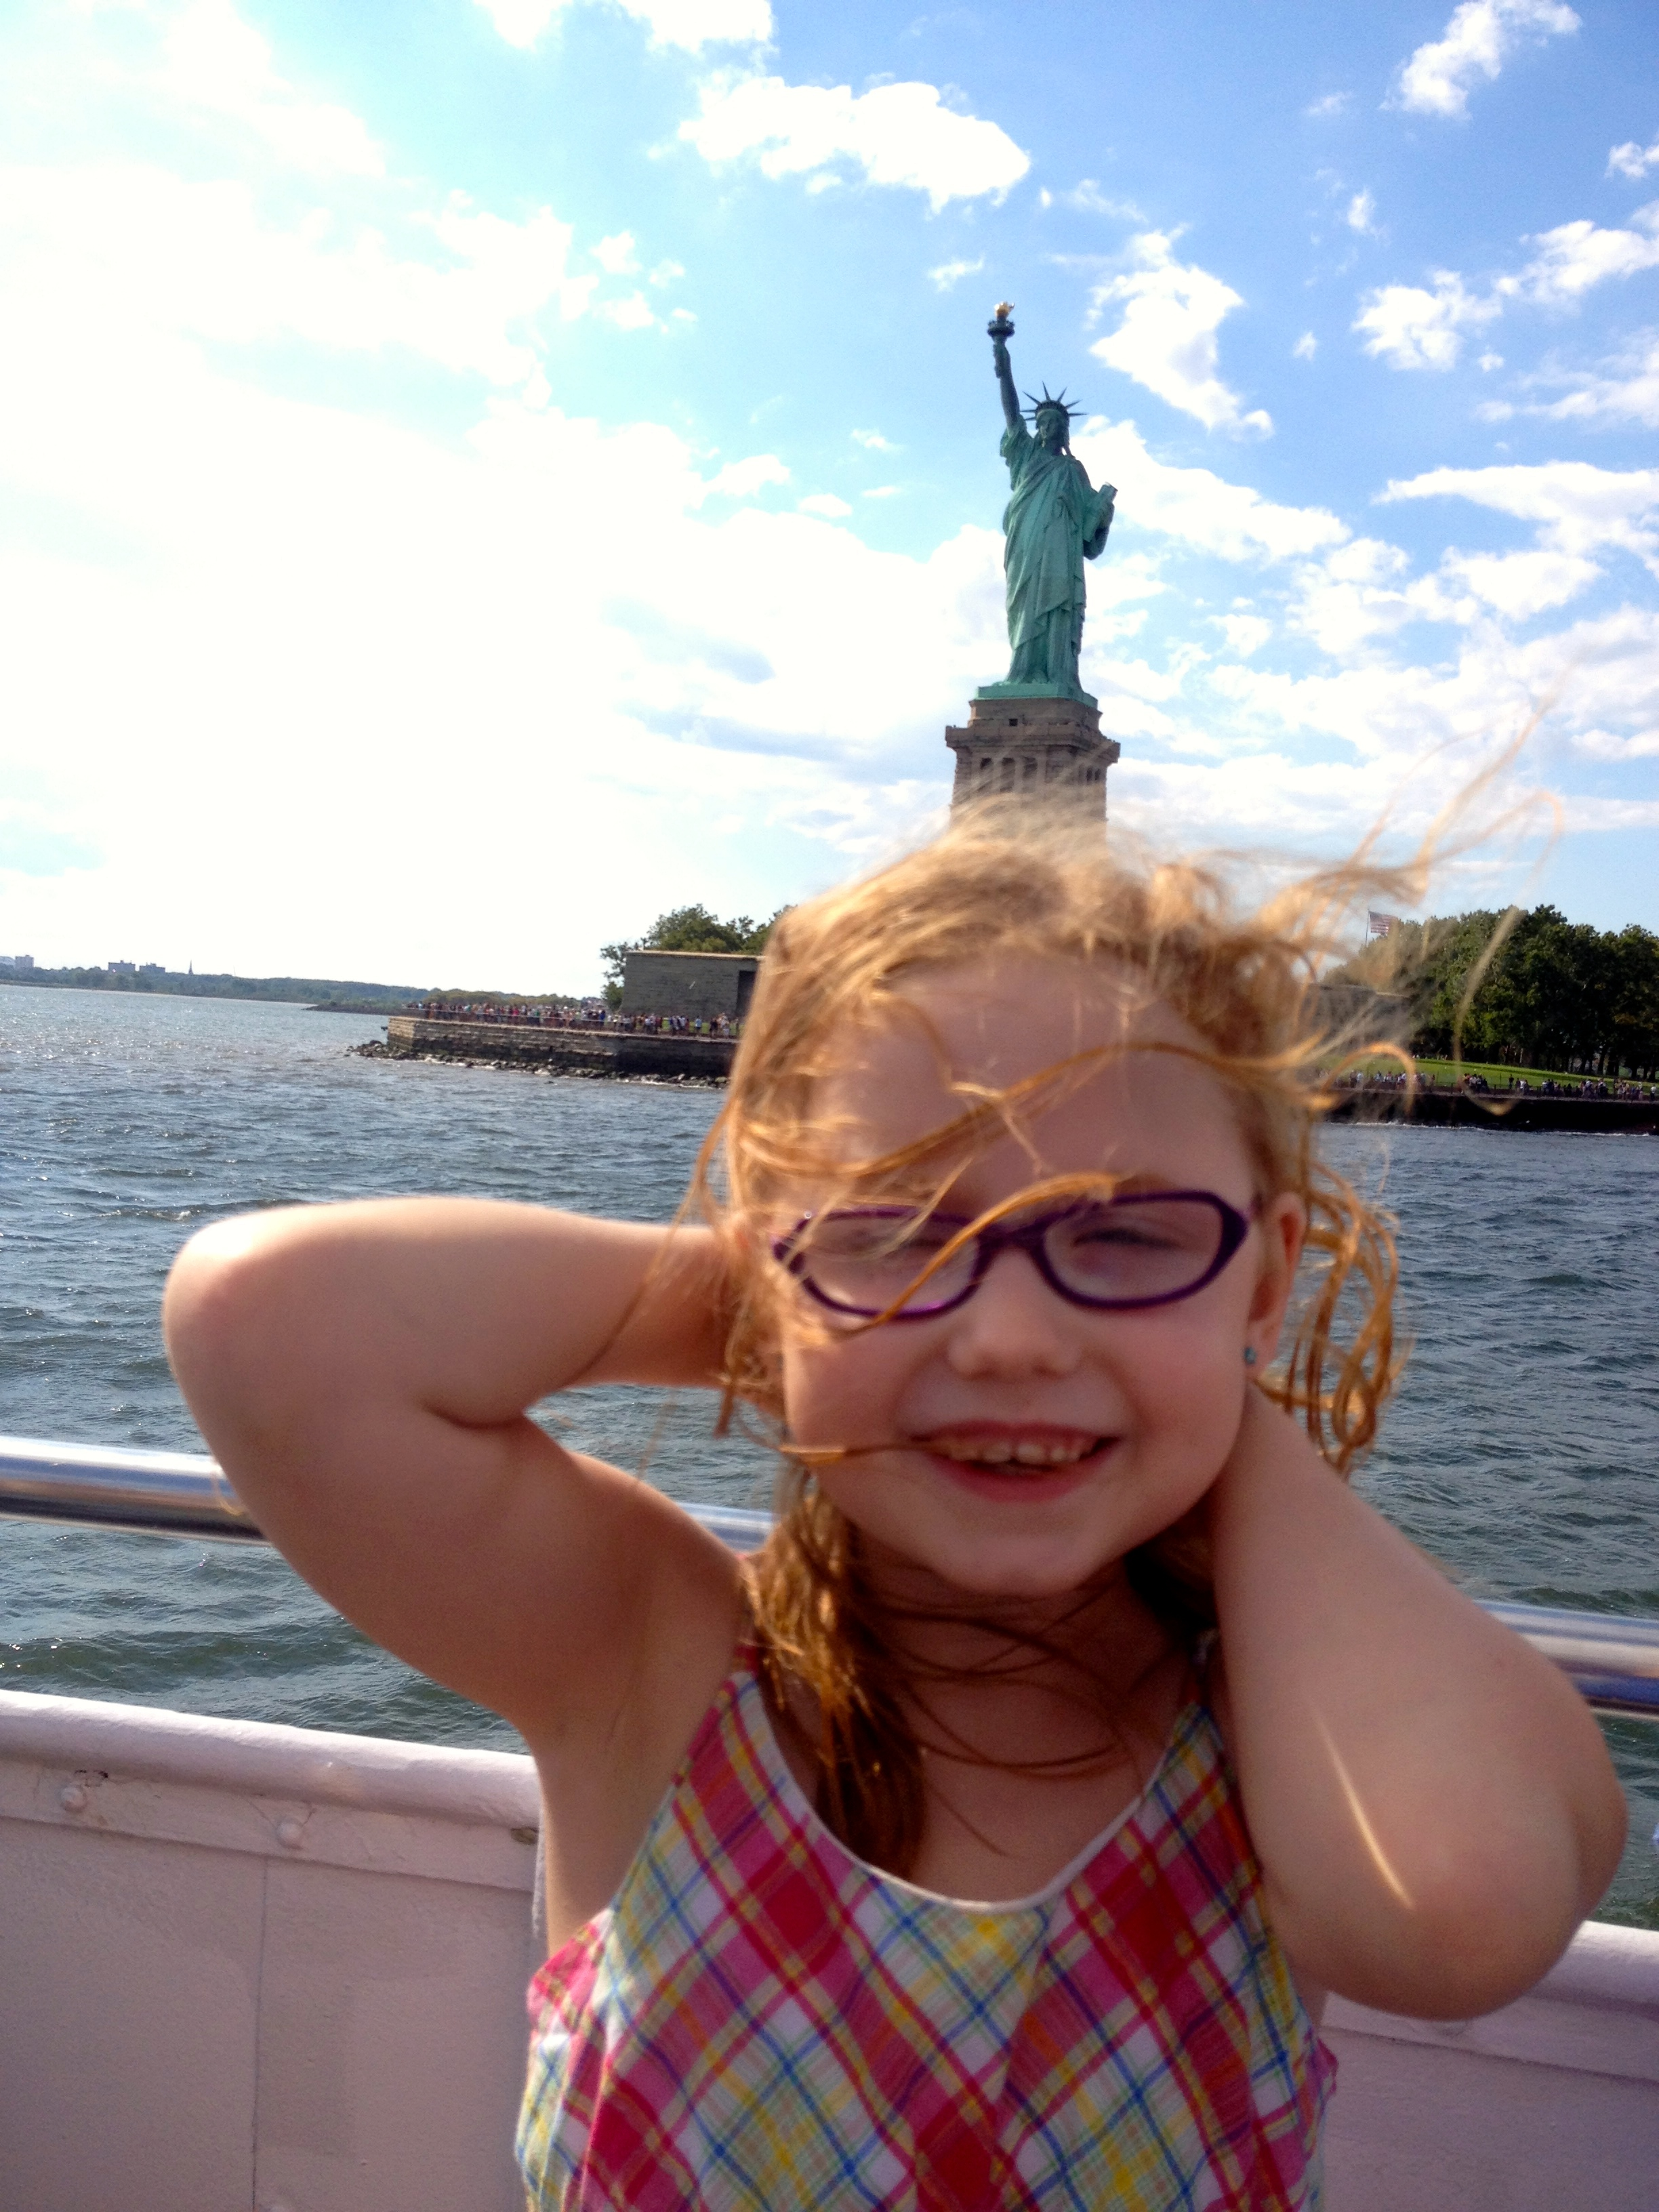 John thought it was great fun to try to get photos with Lady Liberty on people's heads.